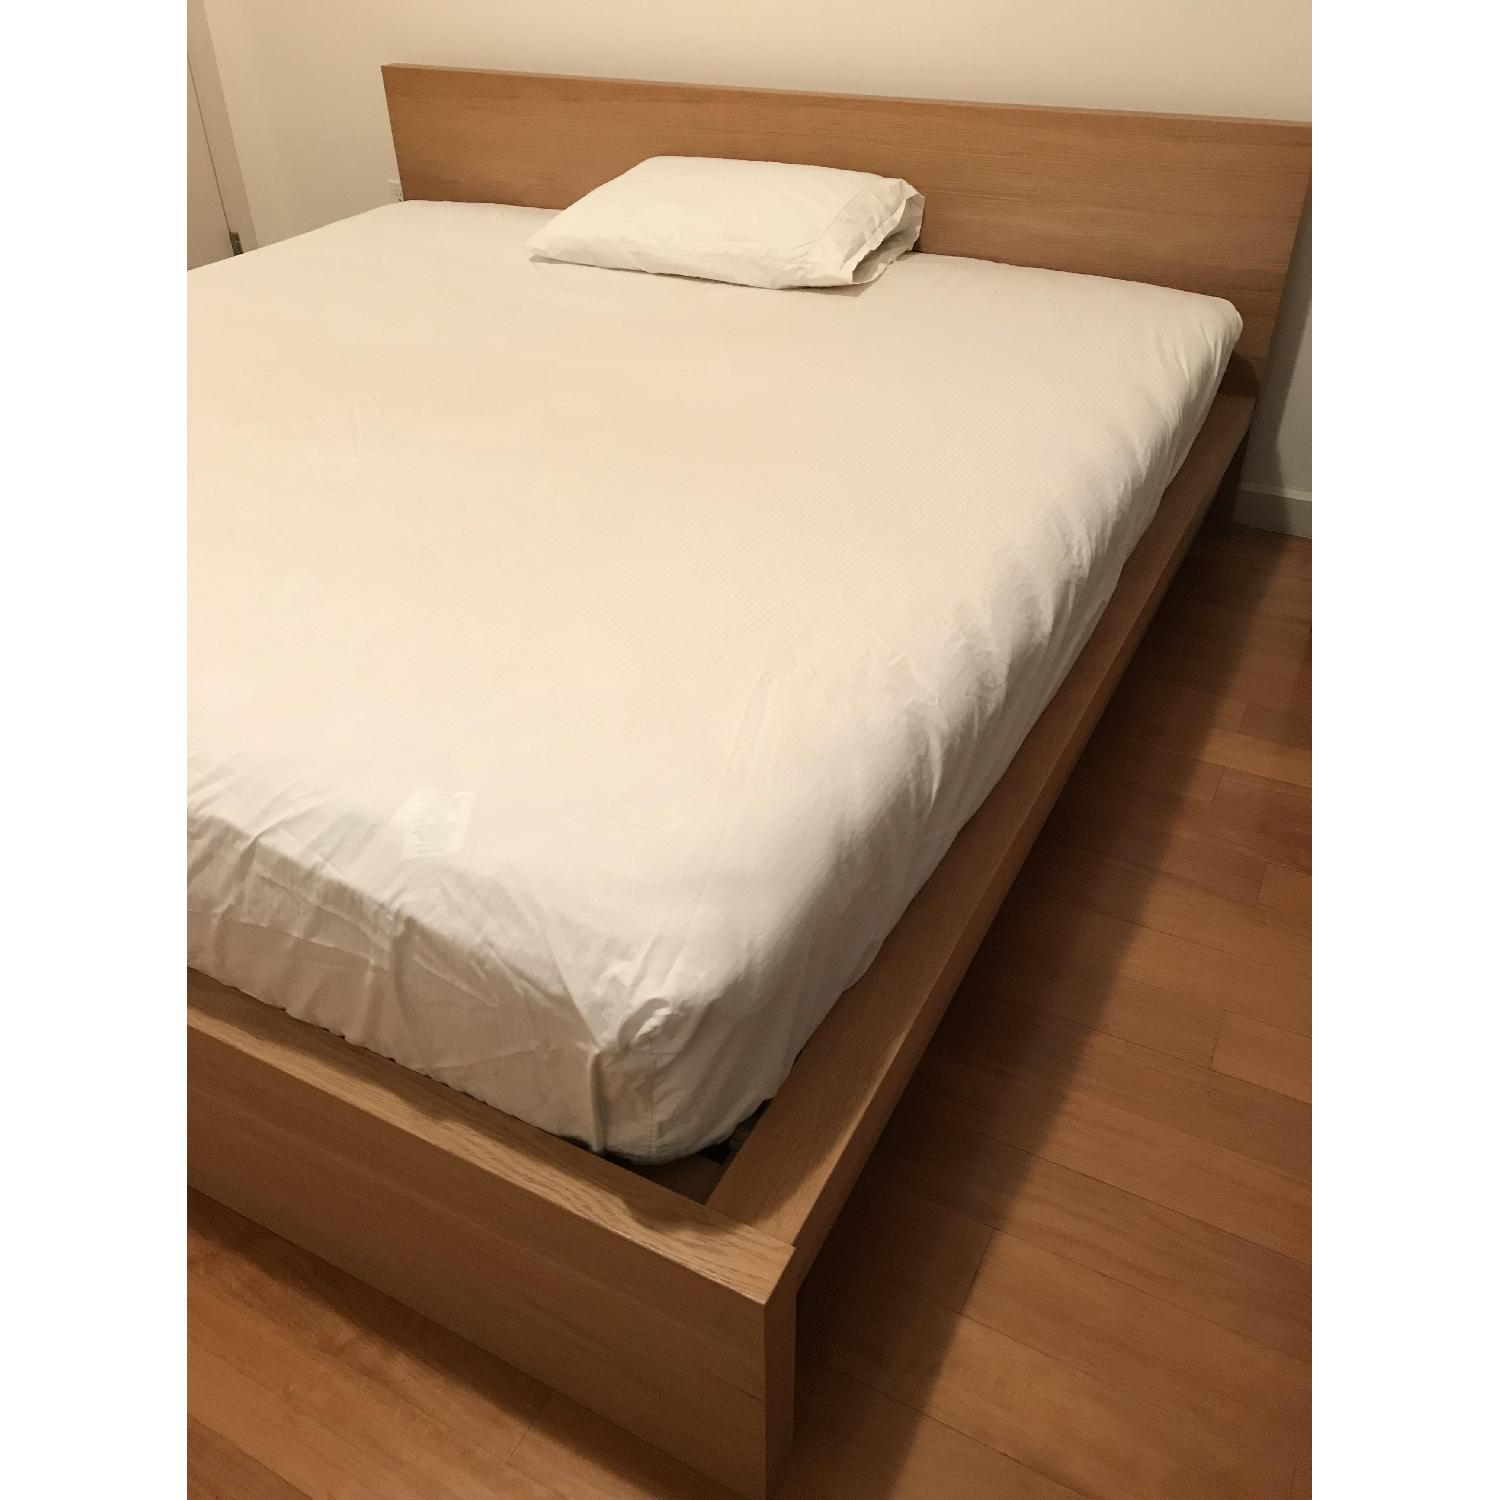 Beautiful Can Any Mattress Fit Ikea Bed Frame